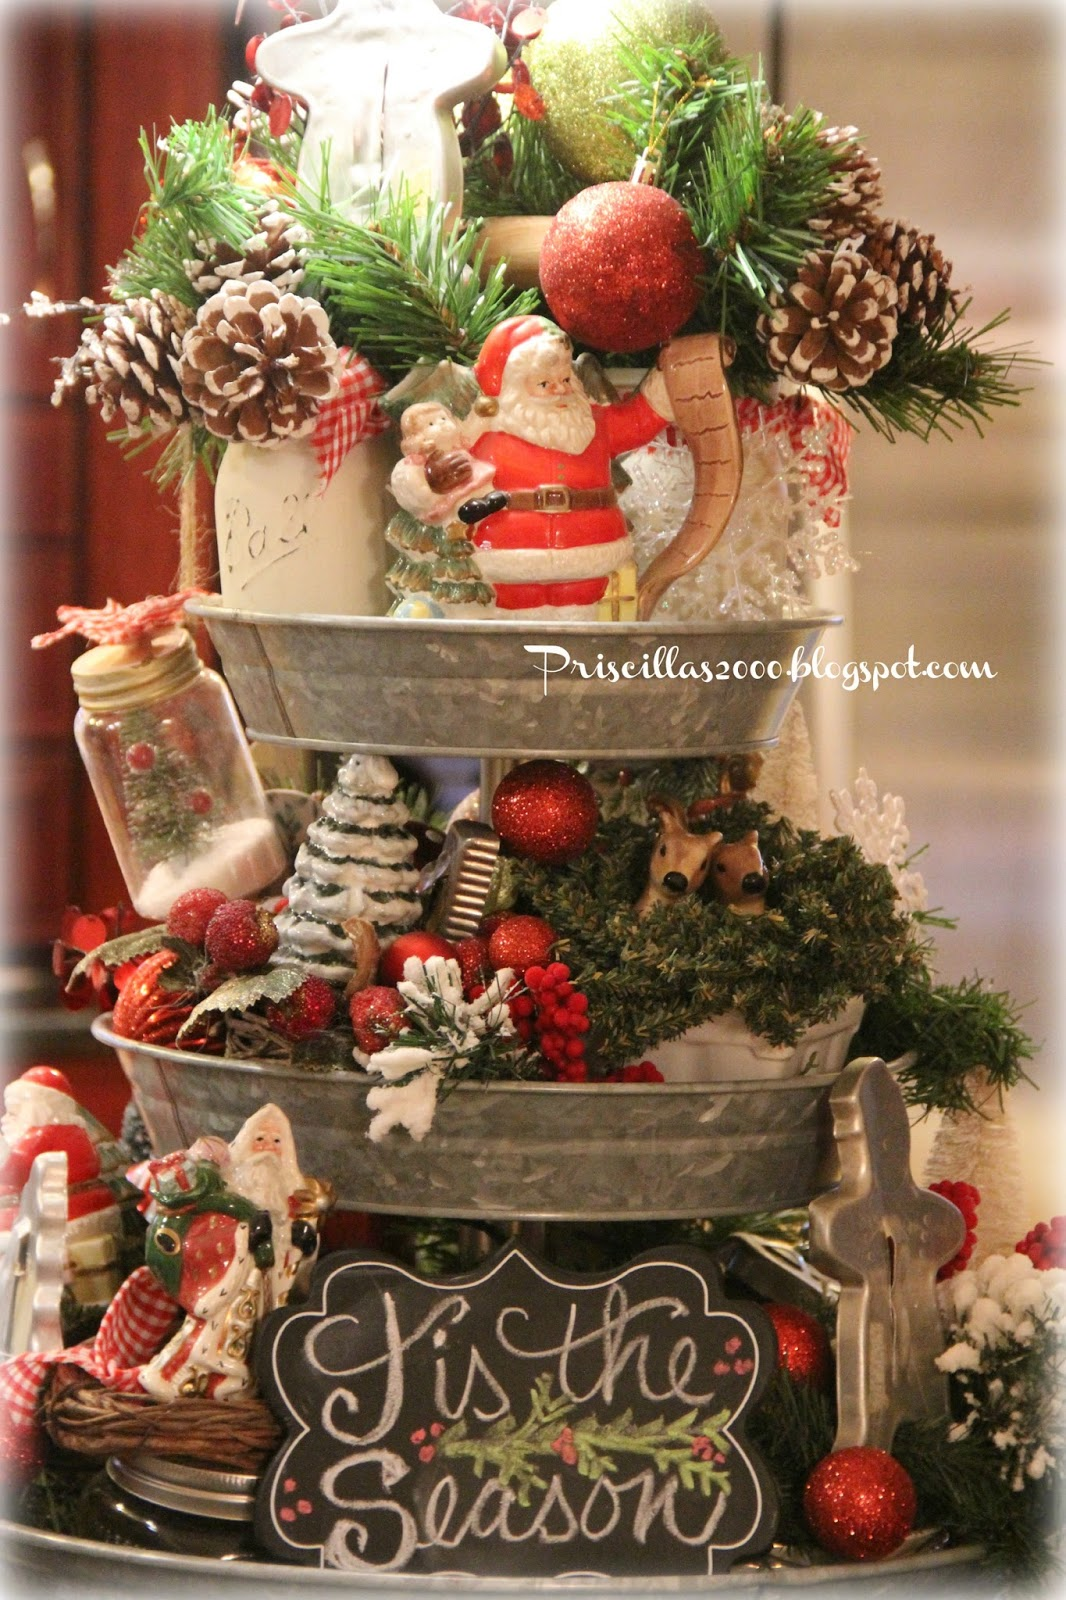 Priscillas Christmas Galvanized Tiered Tray 2015